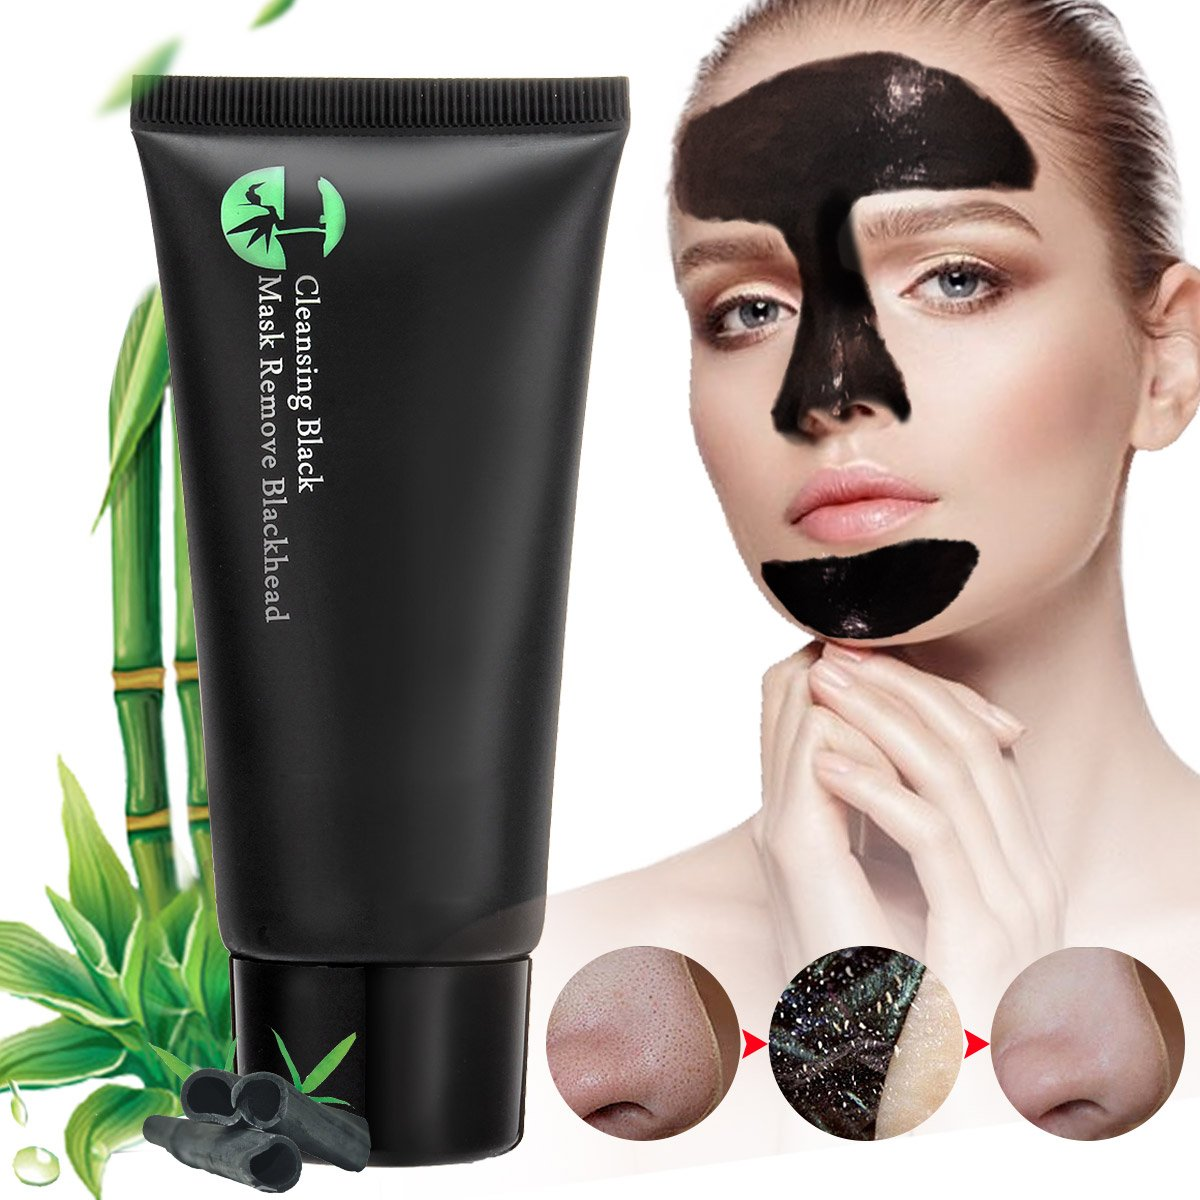 Blackhead Mask, BINKBANGBANGDA Face Mask Black Blackhead Remover Mask Deep Cleansing Pore Blackhead Remove Blackheads Cleansing Mask Peel Off Mask Acne Mask Blackhead Cleansing Mask (50ml)